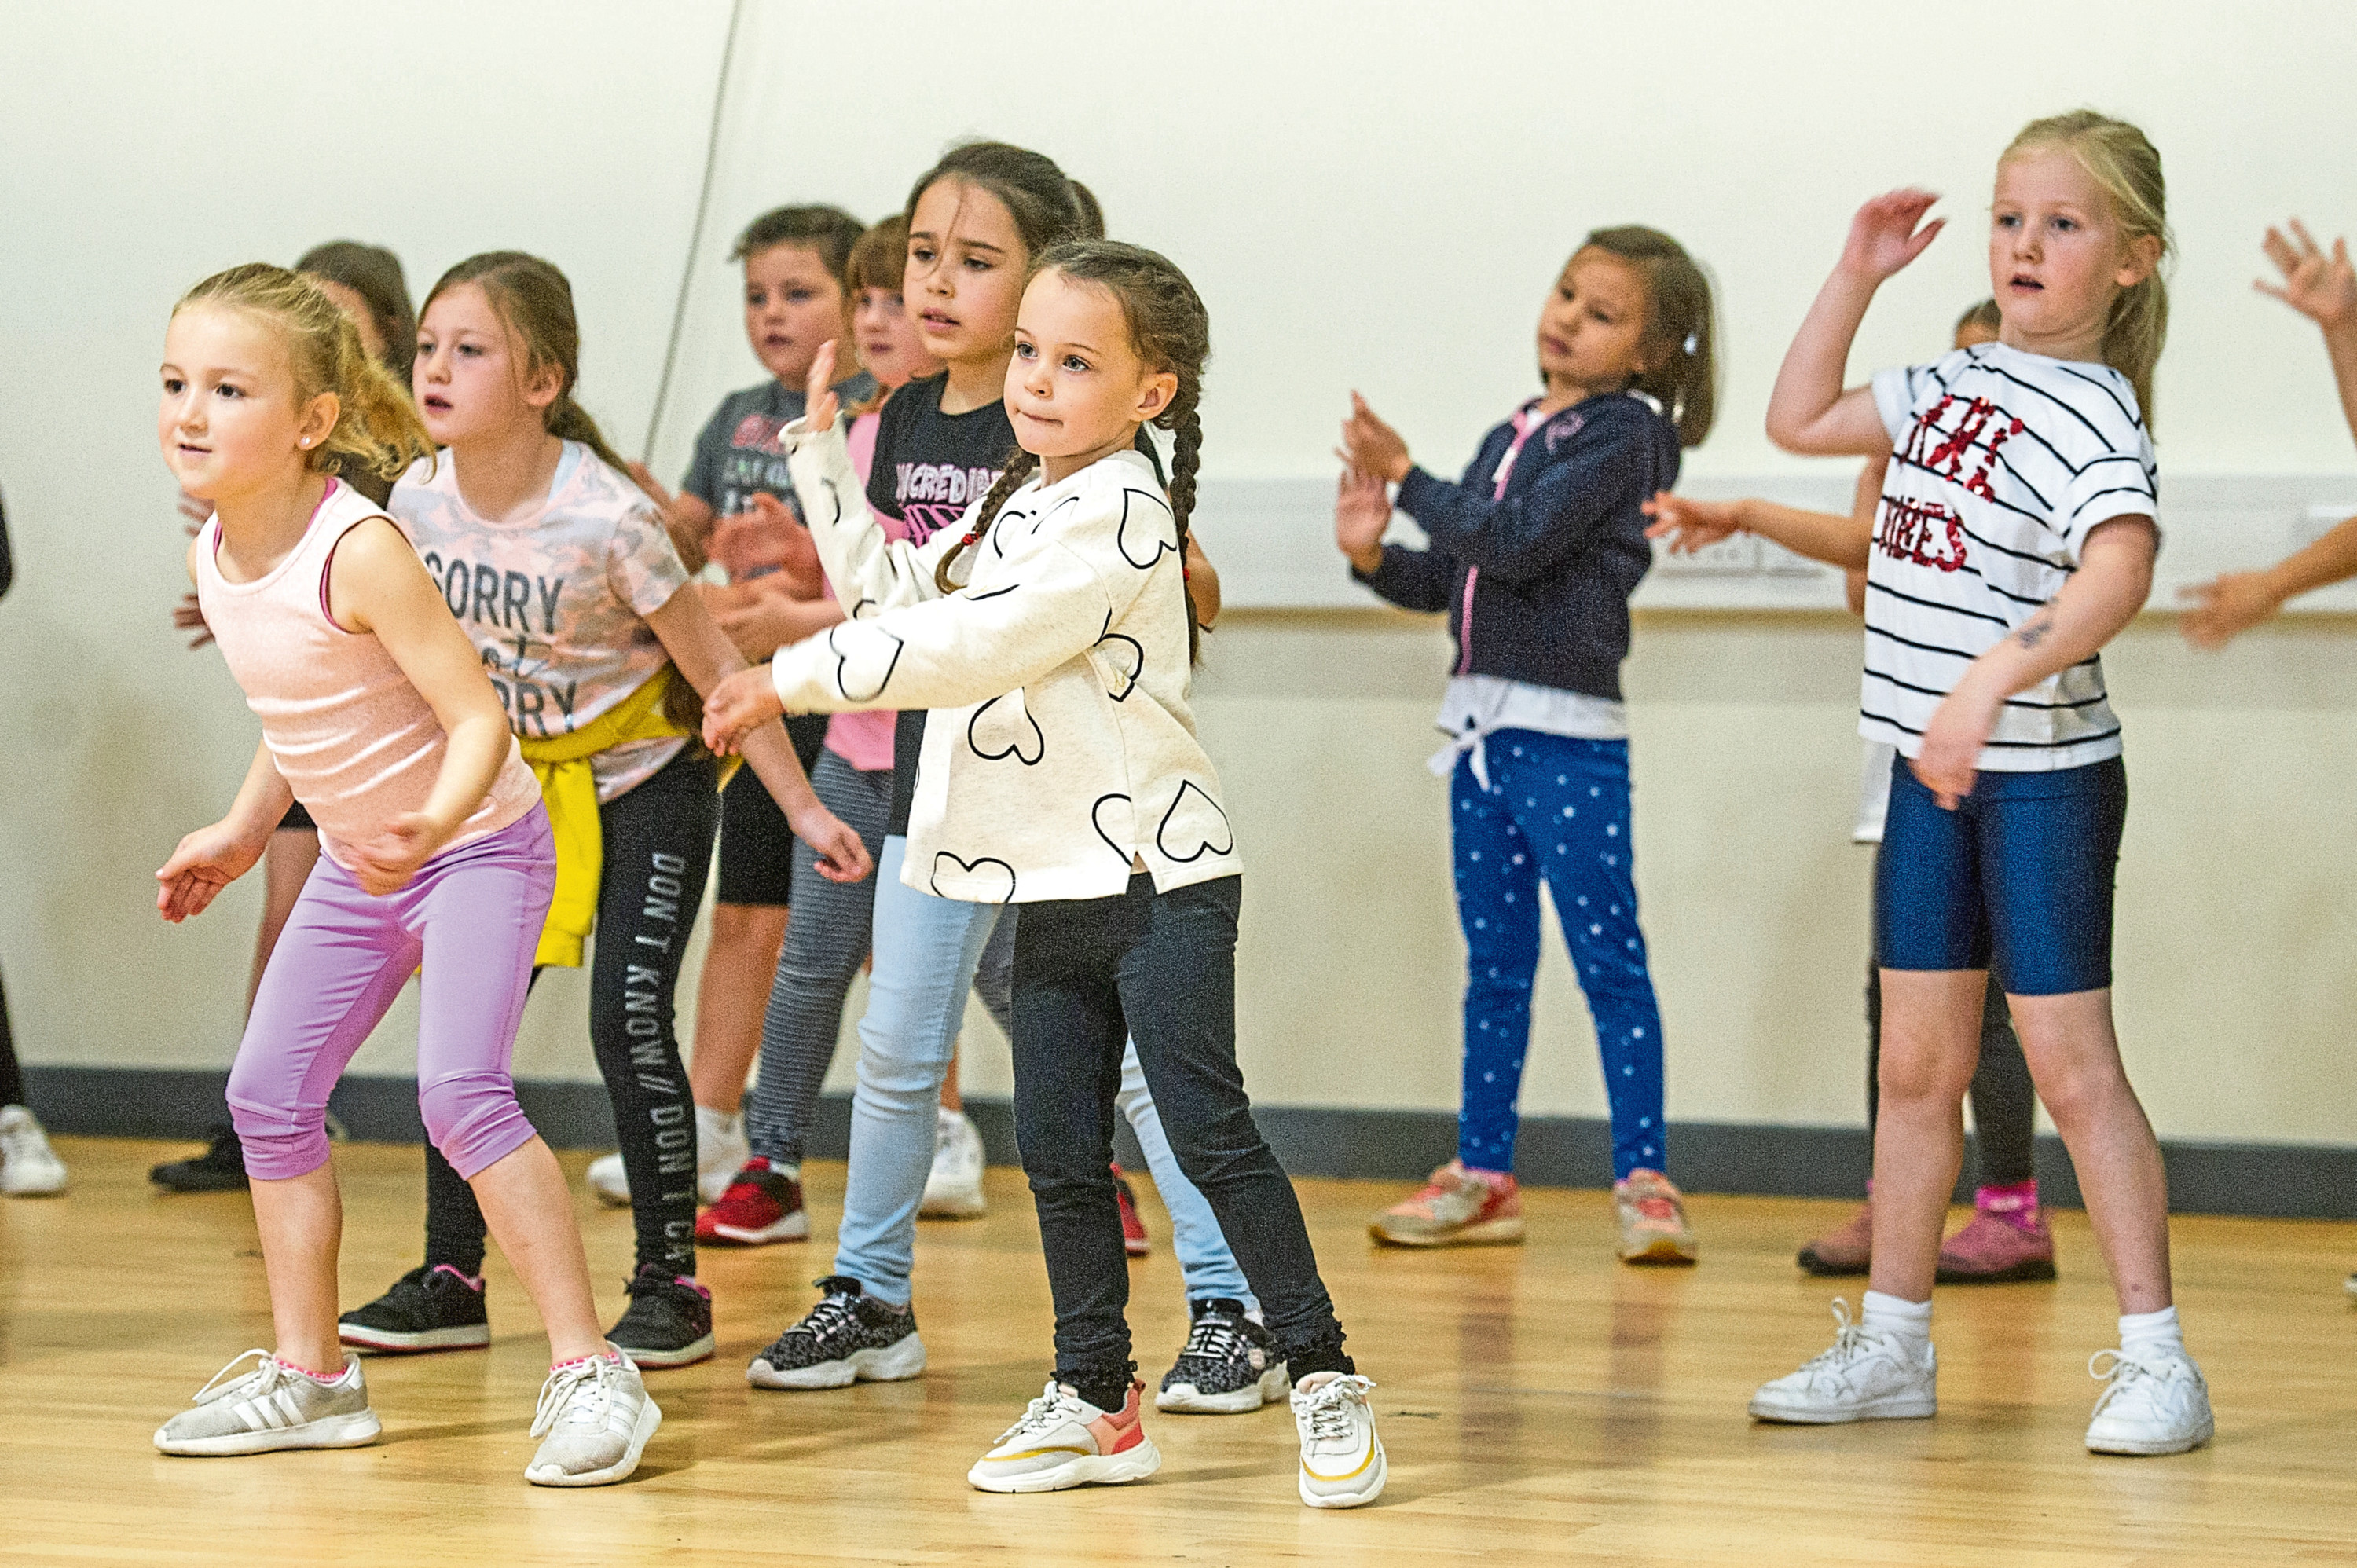 Telegraph News - Dundee - Amy Hall story; CR0015332 Take images of the dancers at the Urban Moves October Camp. Picture Shows; some of the dancers who are participating in the October Camp, St Pauls Swim and Sports Centre, Gillburn Road, Dundee, 16th October 2019. Pic by Kim Cessford / DCT Media